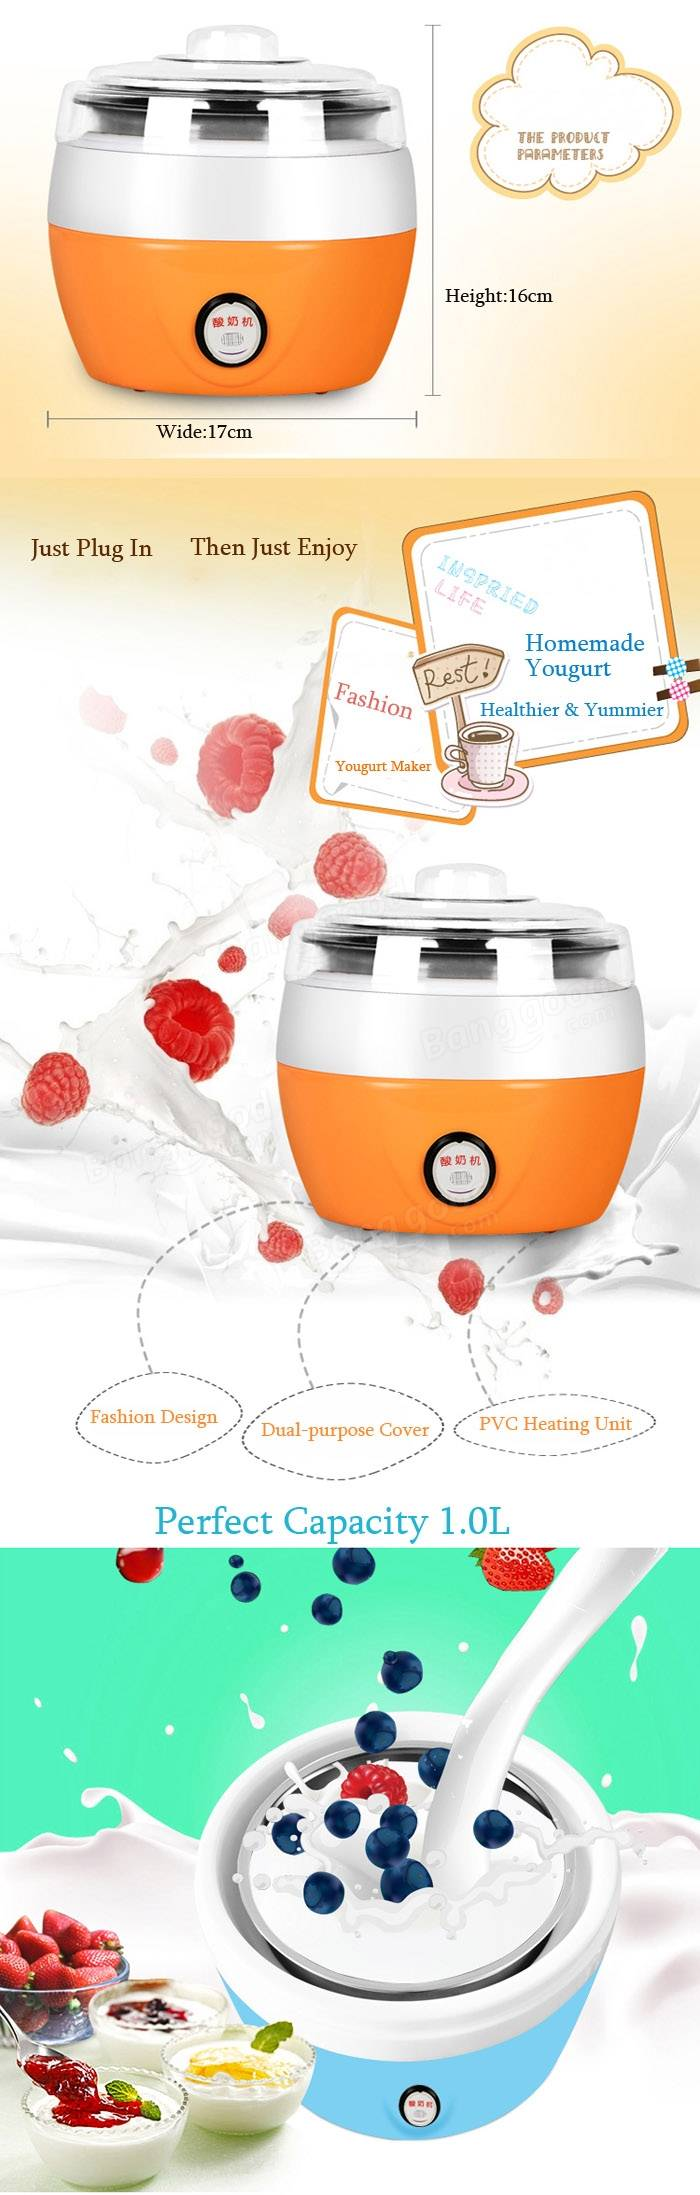 220V Homemade Automatic Yogurt Maker Electric Yogurt Cream Making.